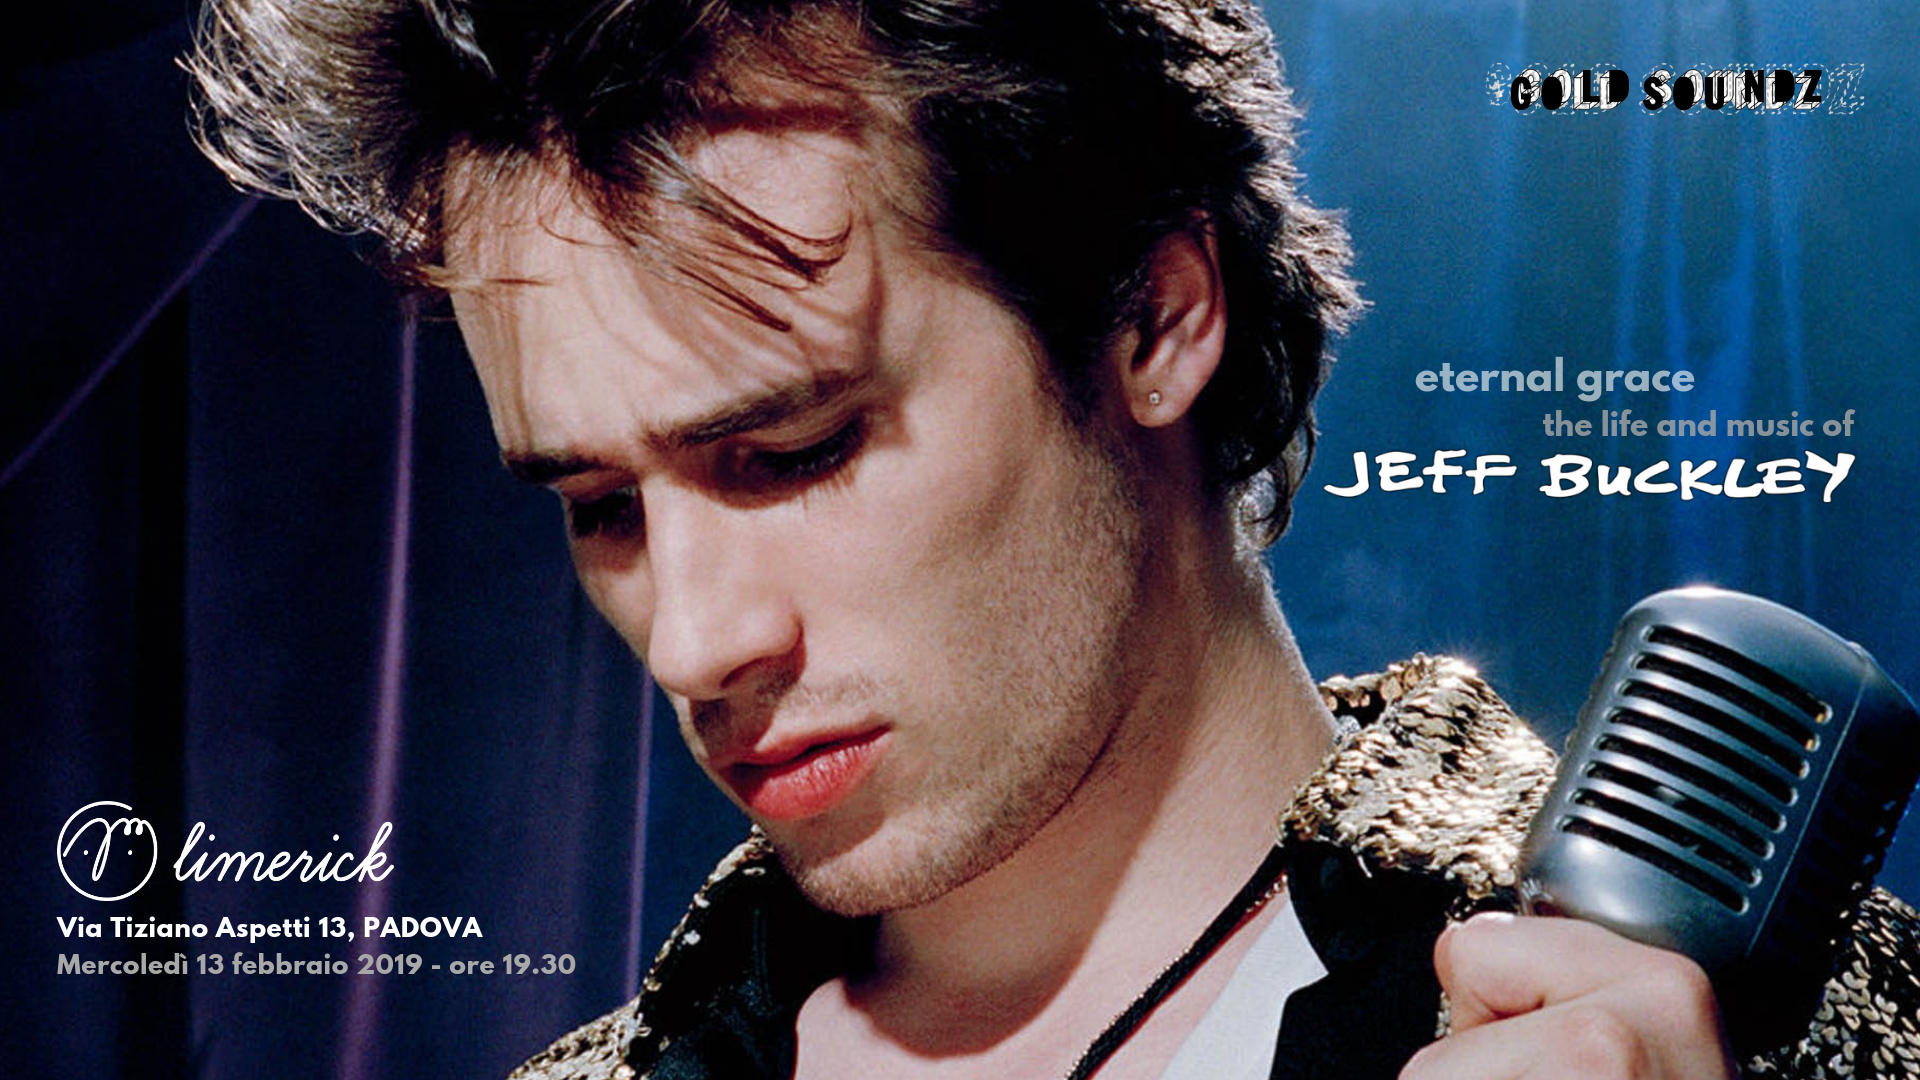 Jeff Buckley Eternal Grace audioforum Limerick Gold Soundz Padova